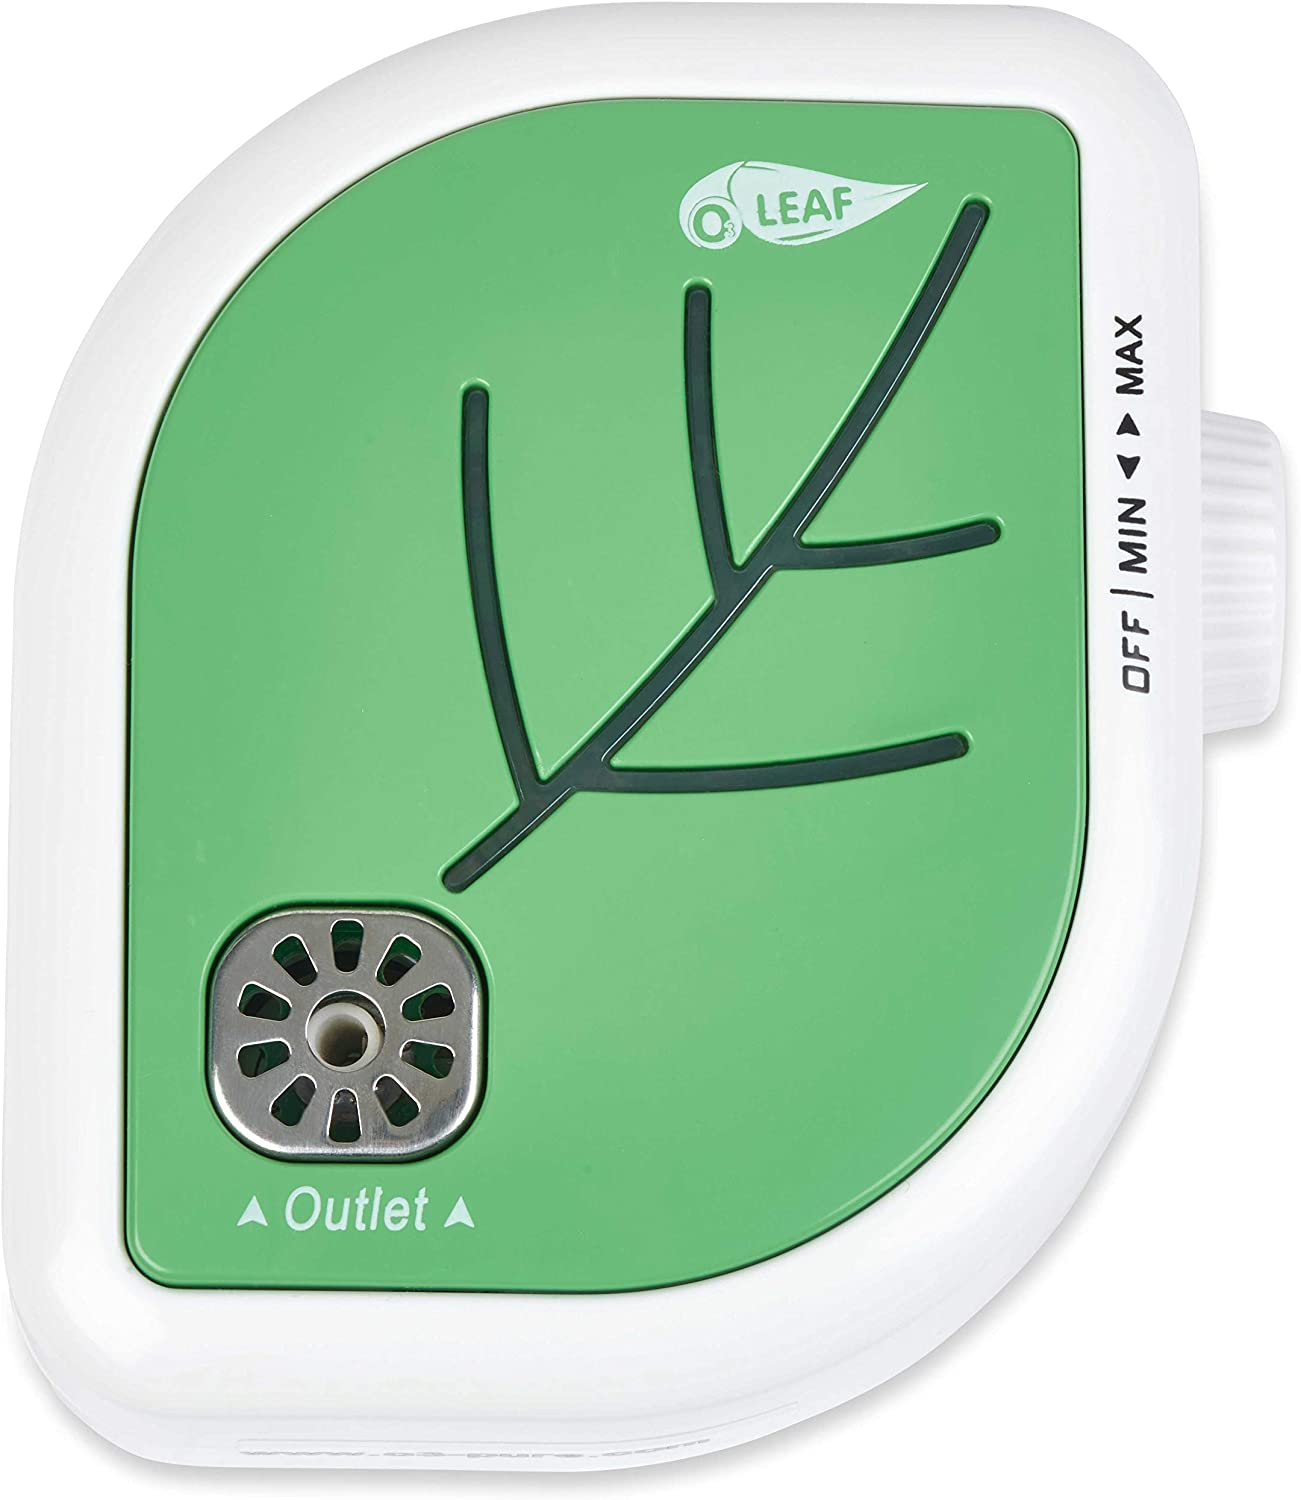 O3 LEAF Plug-In purificador de Aire iónico Ajustable: Amazon.es: Hogar